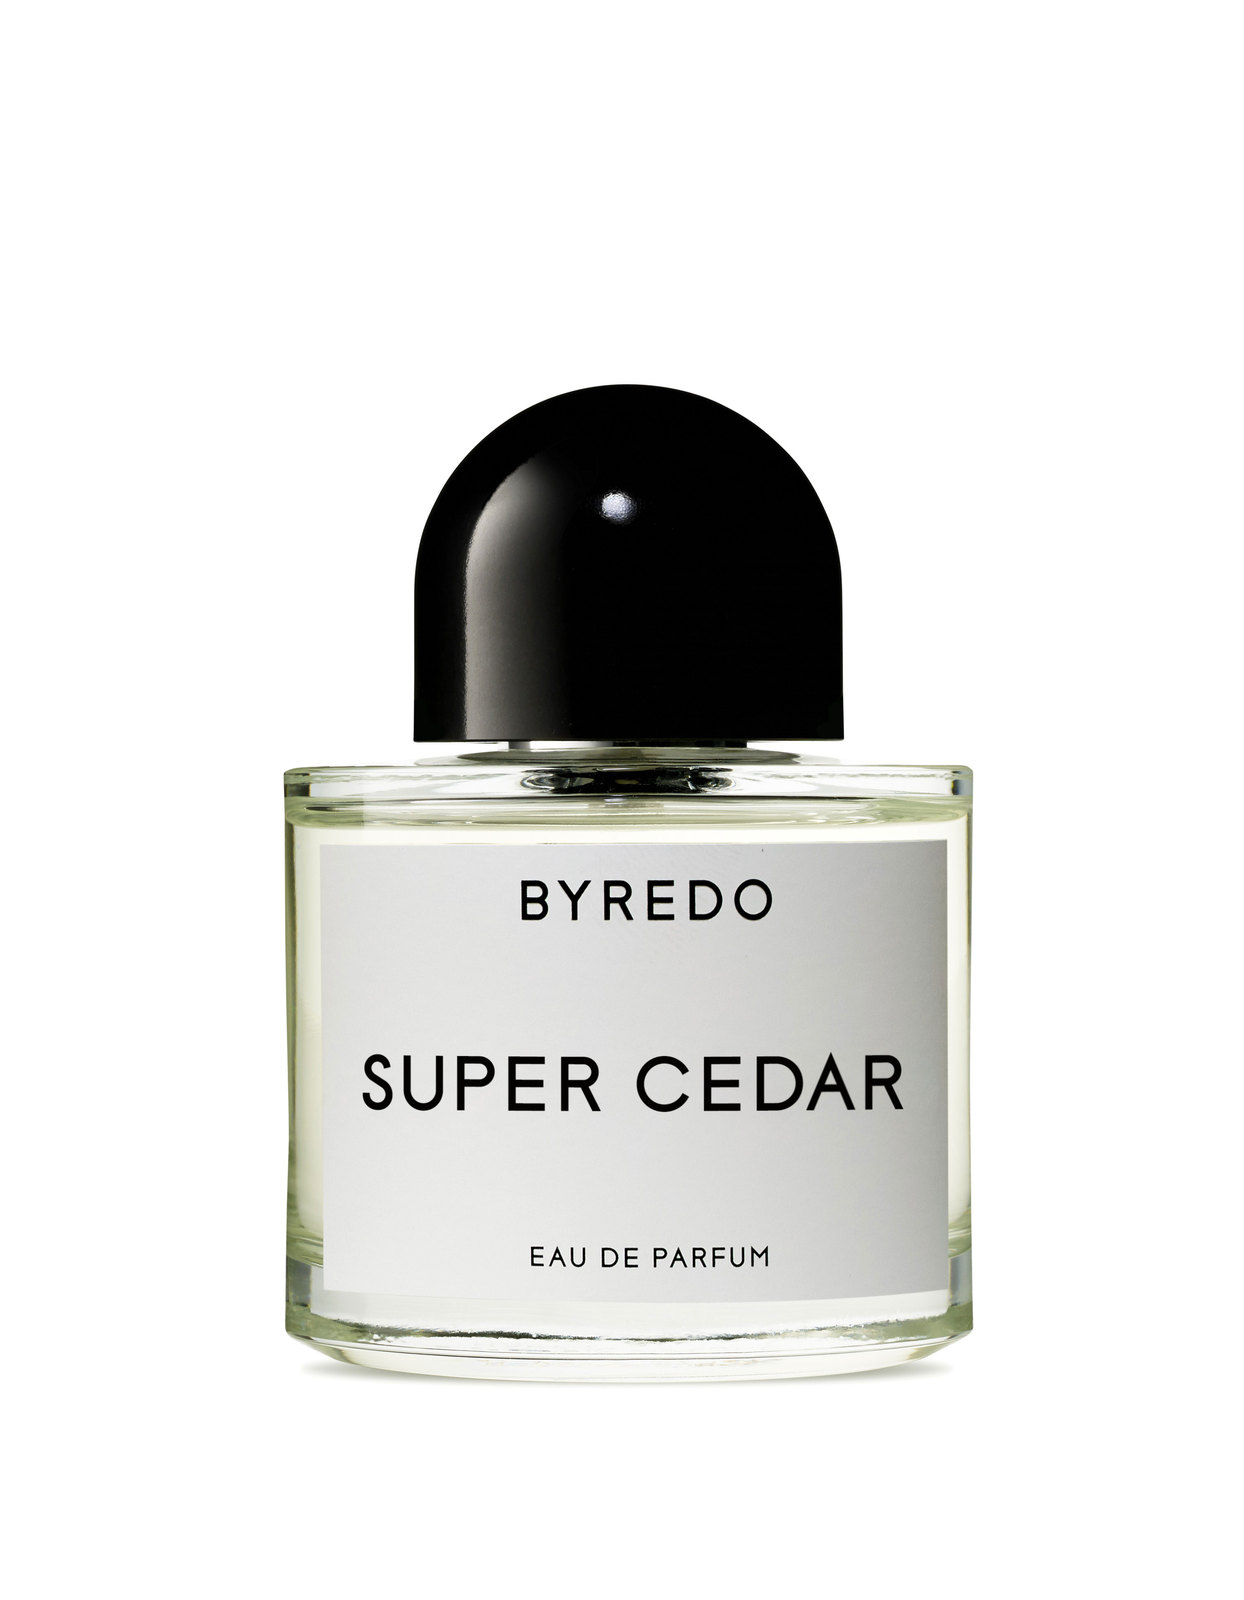 SUPER CEDAR by BYREDO 5ml Travel Spray Perfume Vetiver Musk EDP NEW FRAGRANCE